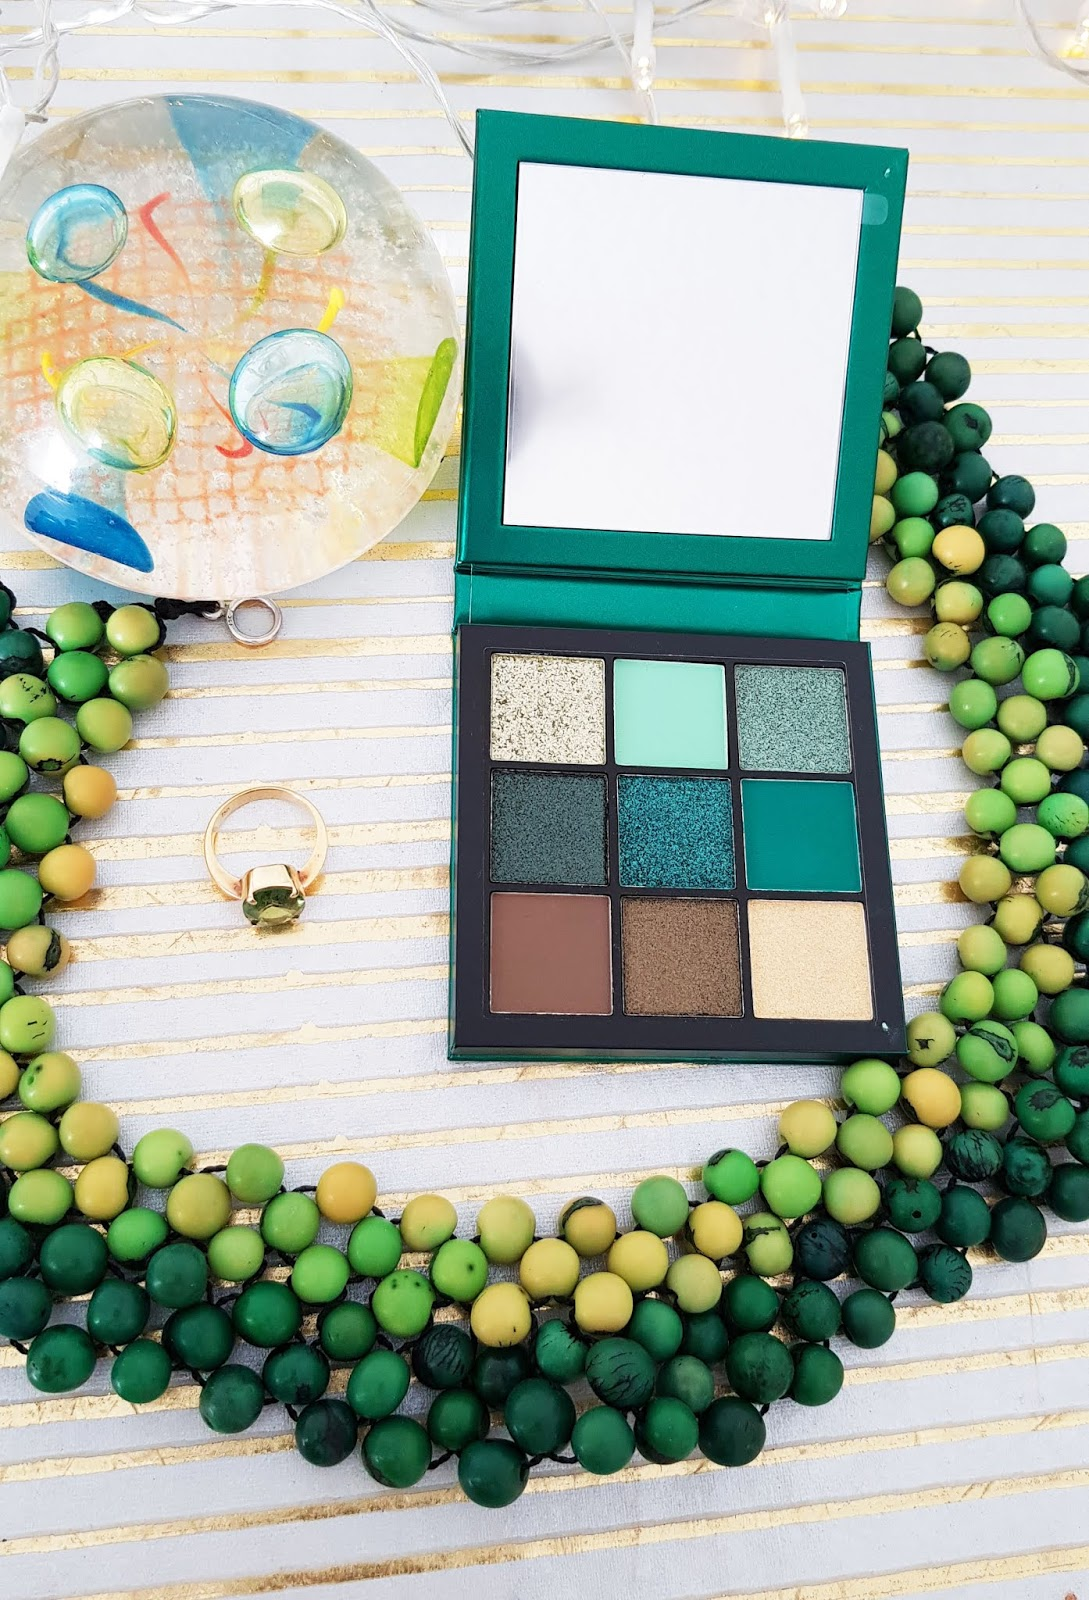 Not just for millennials: the Huda Beauty Emerald Obsessions palette